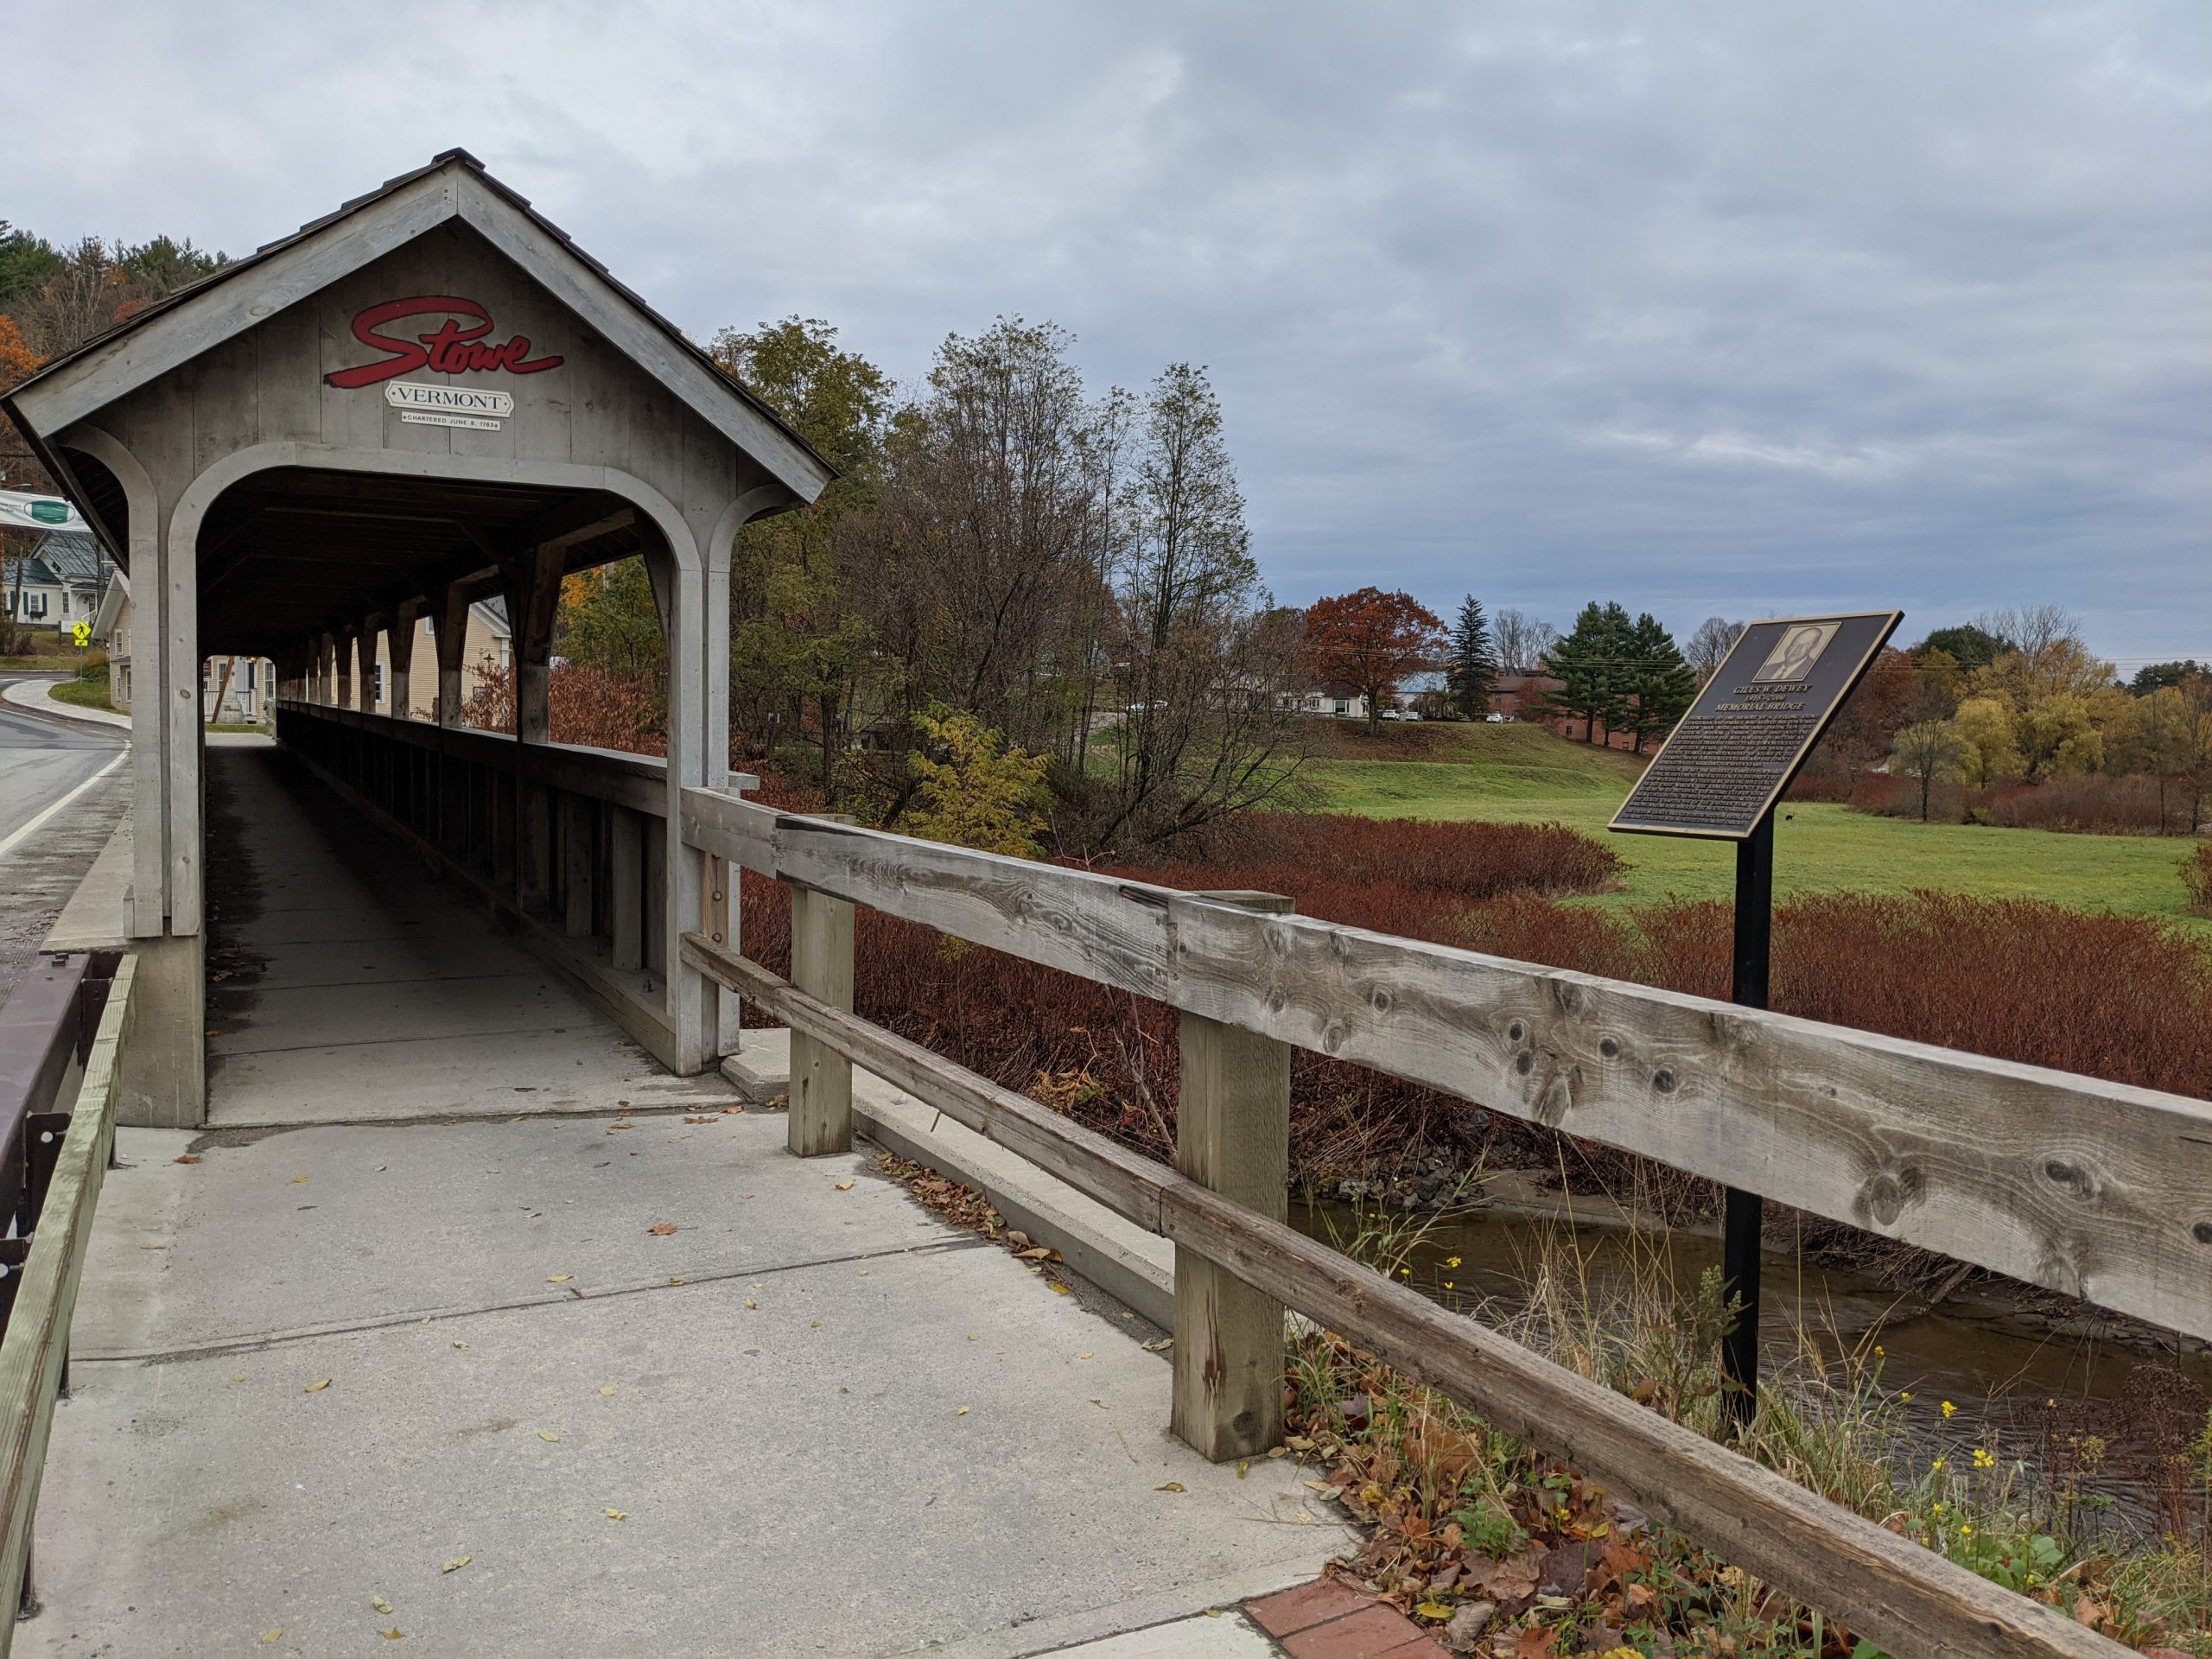 Stowe, Vermont Covered Bridge